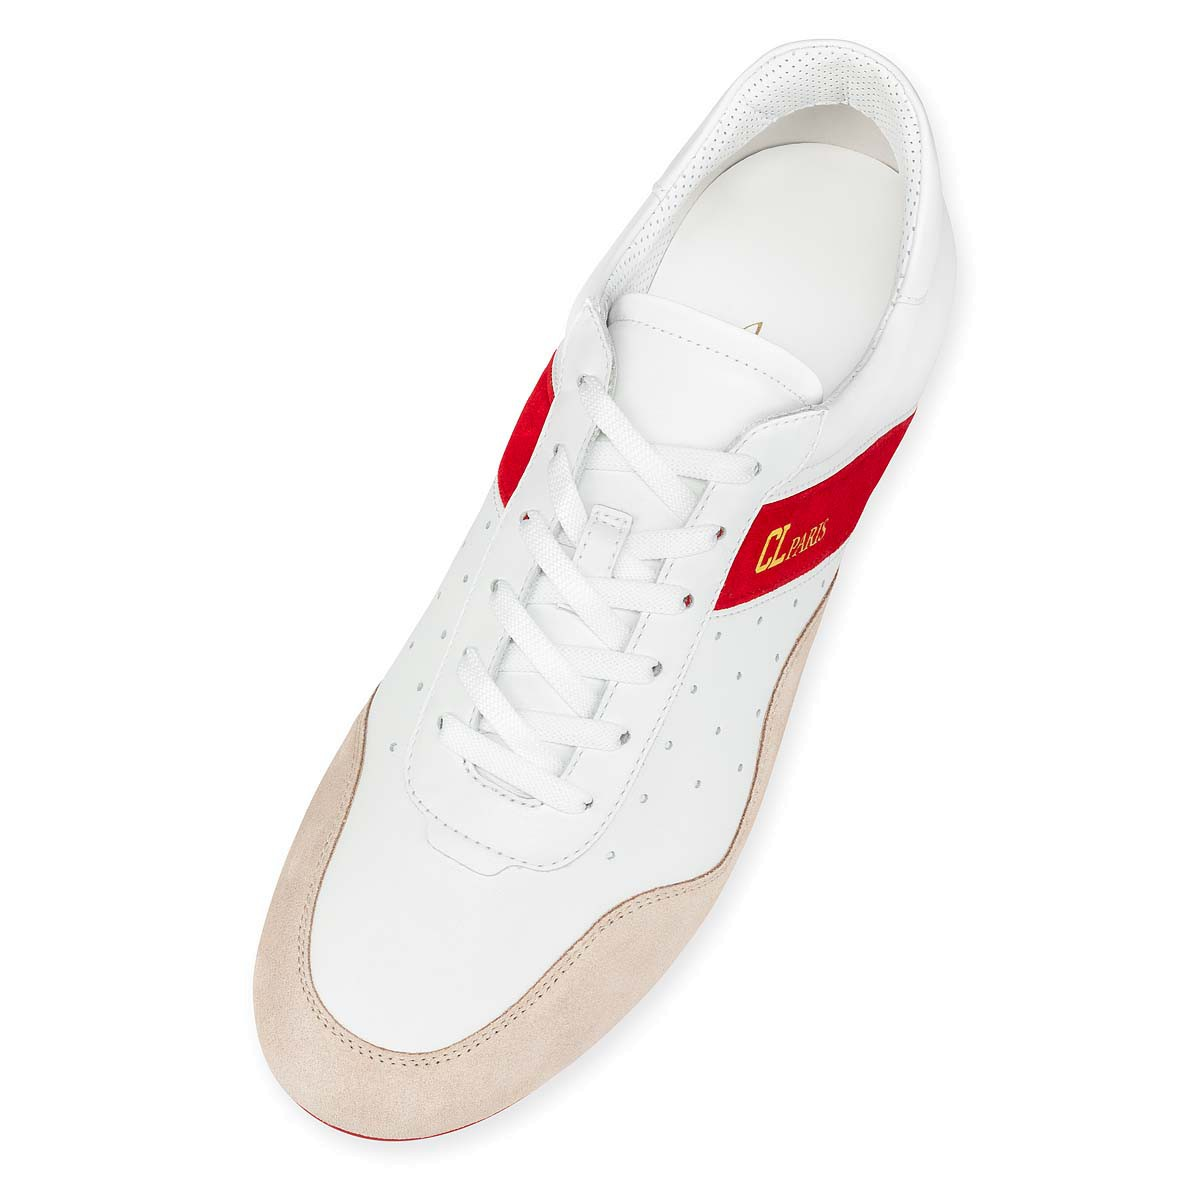 Shoes - My K Low Flat - Christian Louboutin